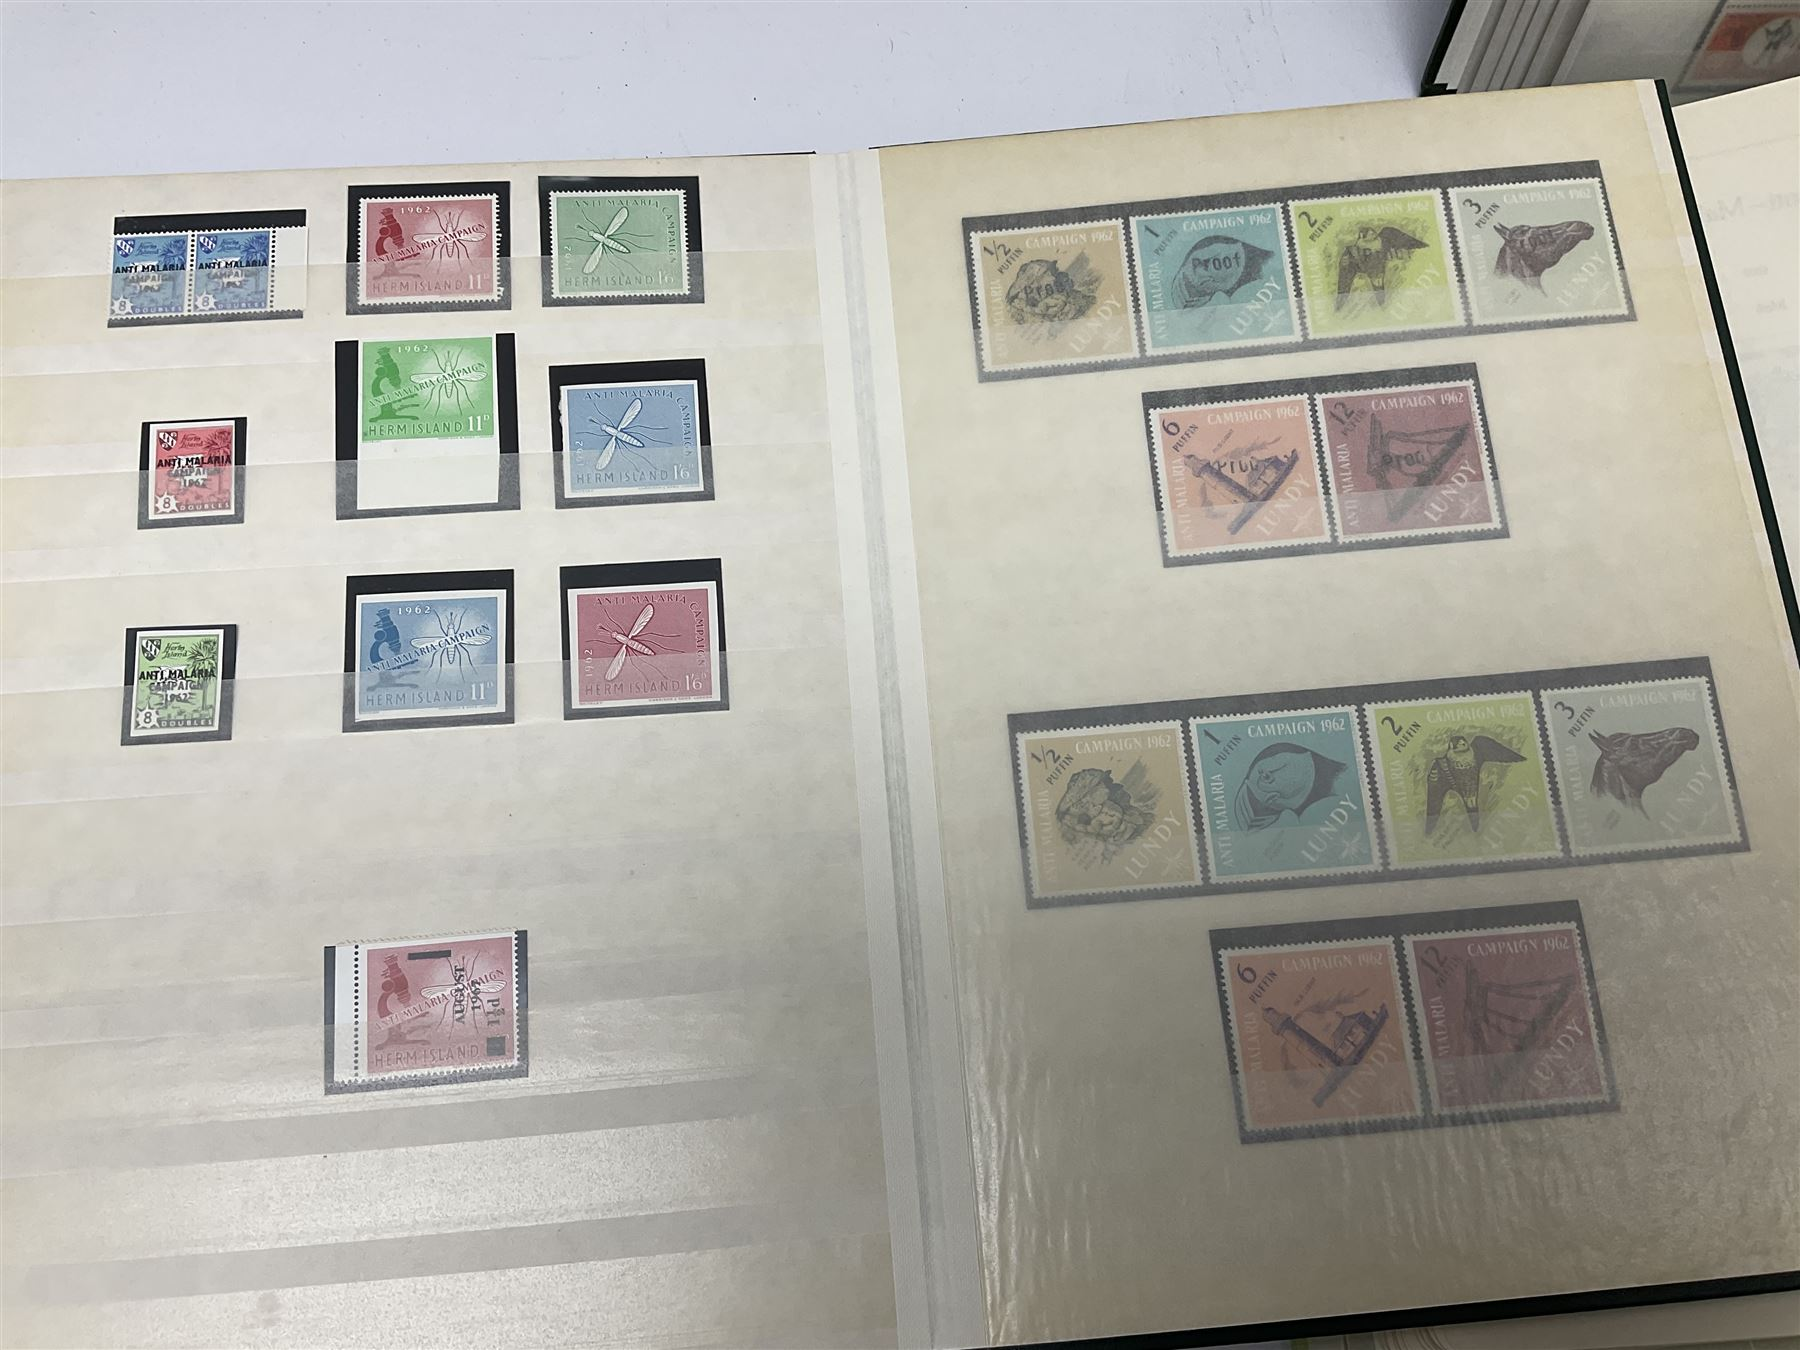 Stamps mostly relating to 'The World Against Malaria' from various Countries including Angola - Image 6 of 17